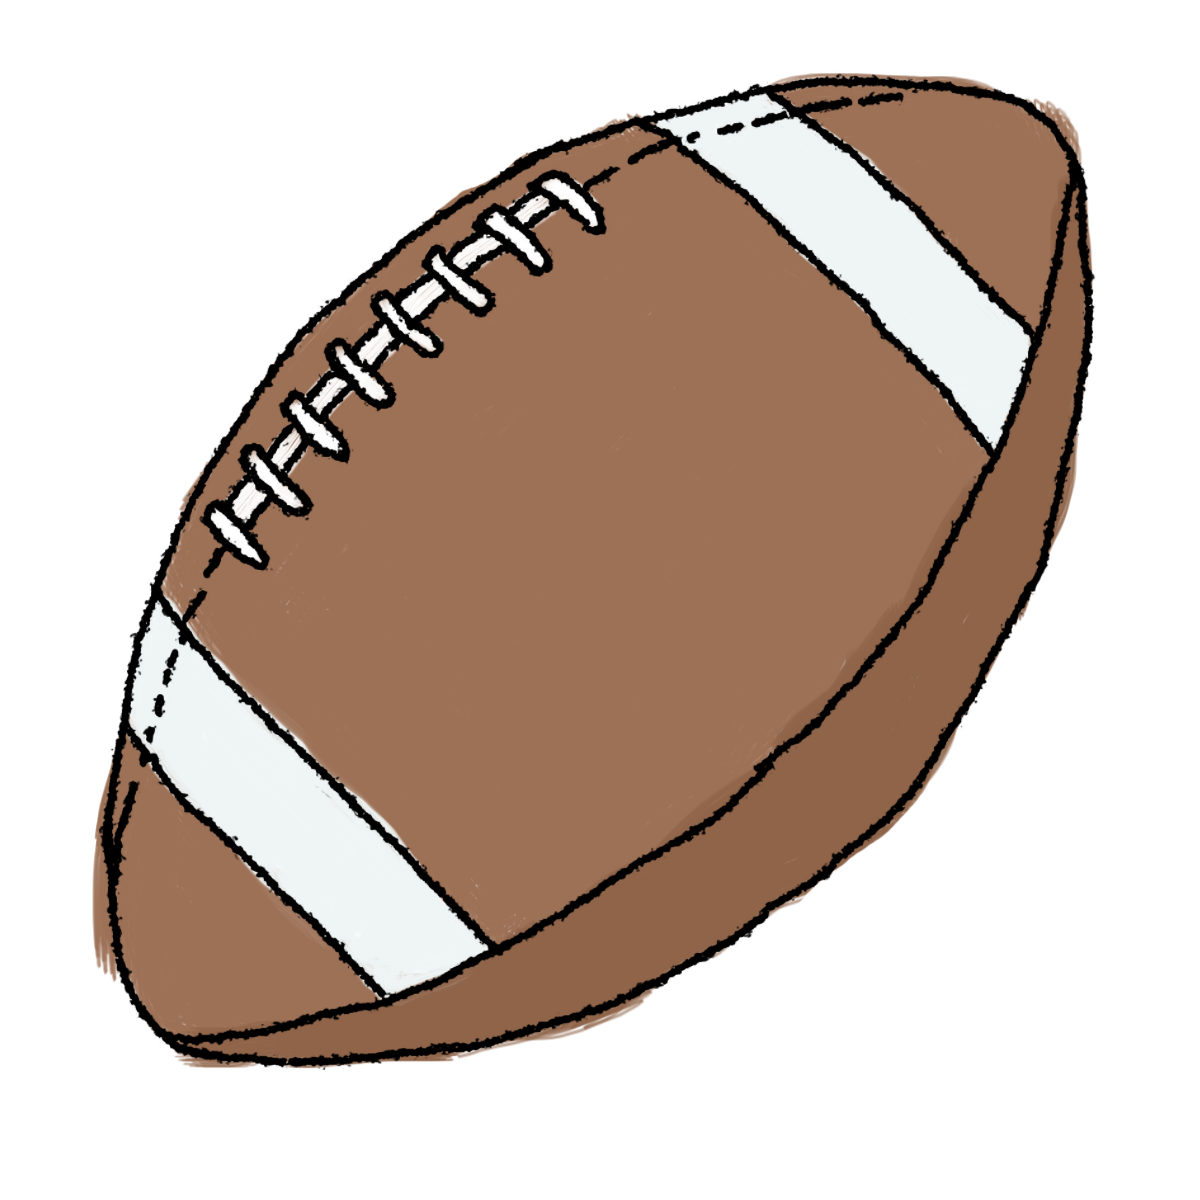 Super bowl 2014 clipart free svg free stock Free Super Bowl Cliparts, Download Free Clip Art, Free Clip ... svg free stock